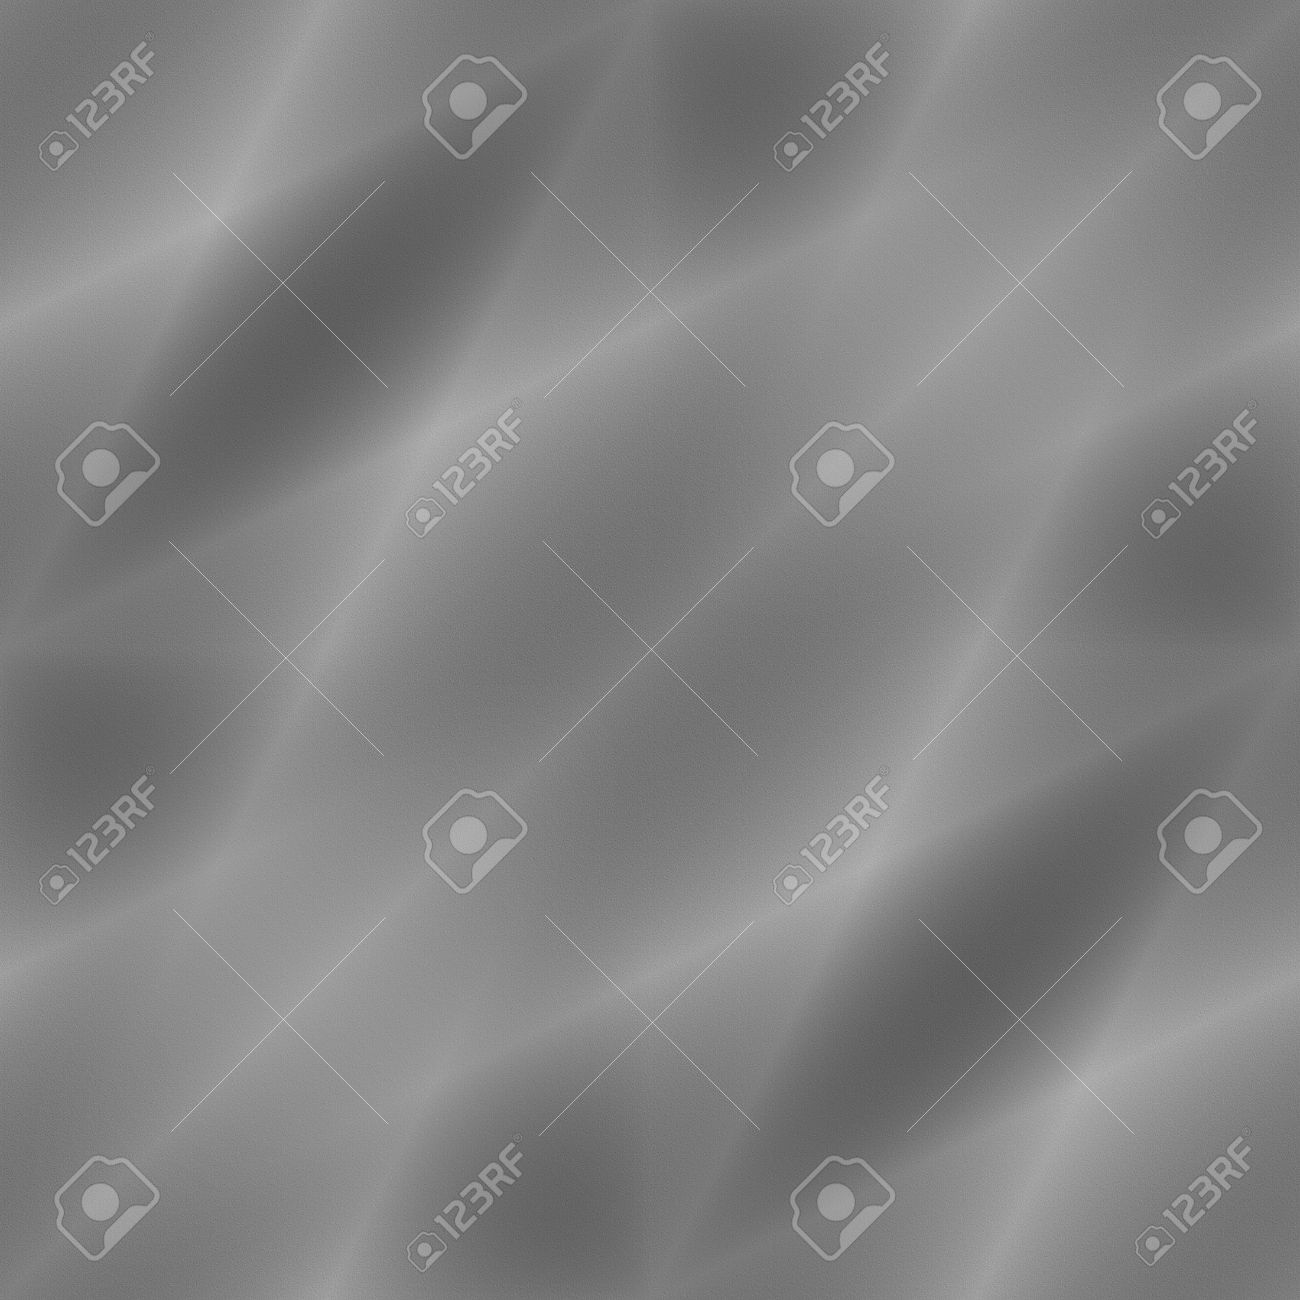 Foggy Seamless Abstract Abstract Lightgrey Seamless Tileable